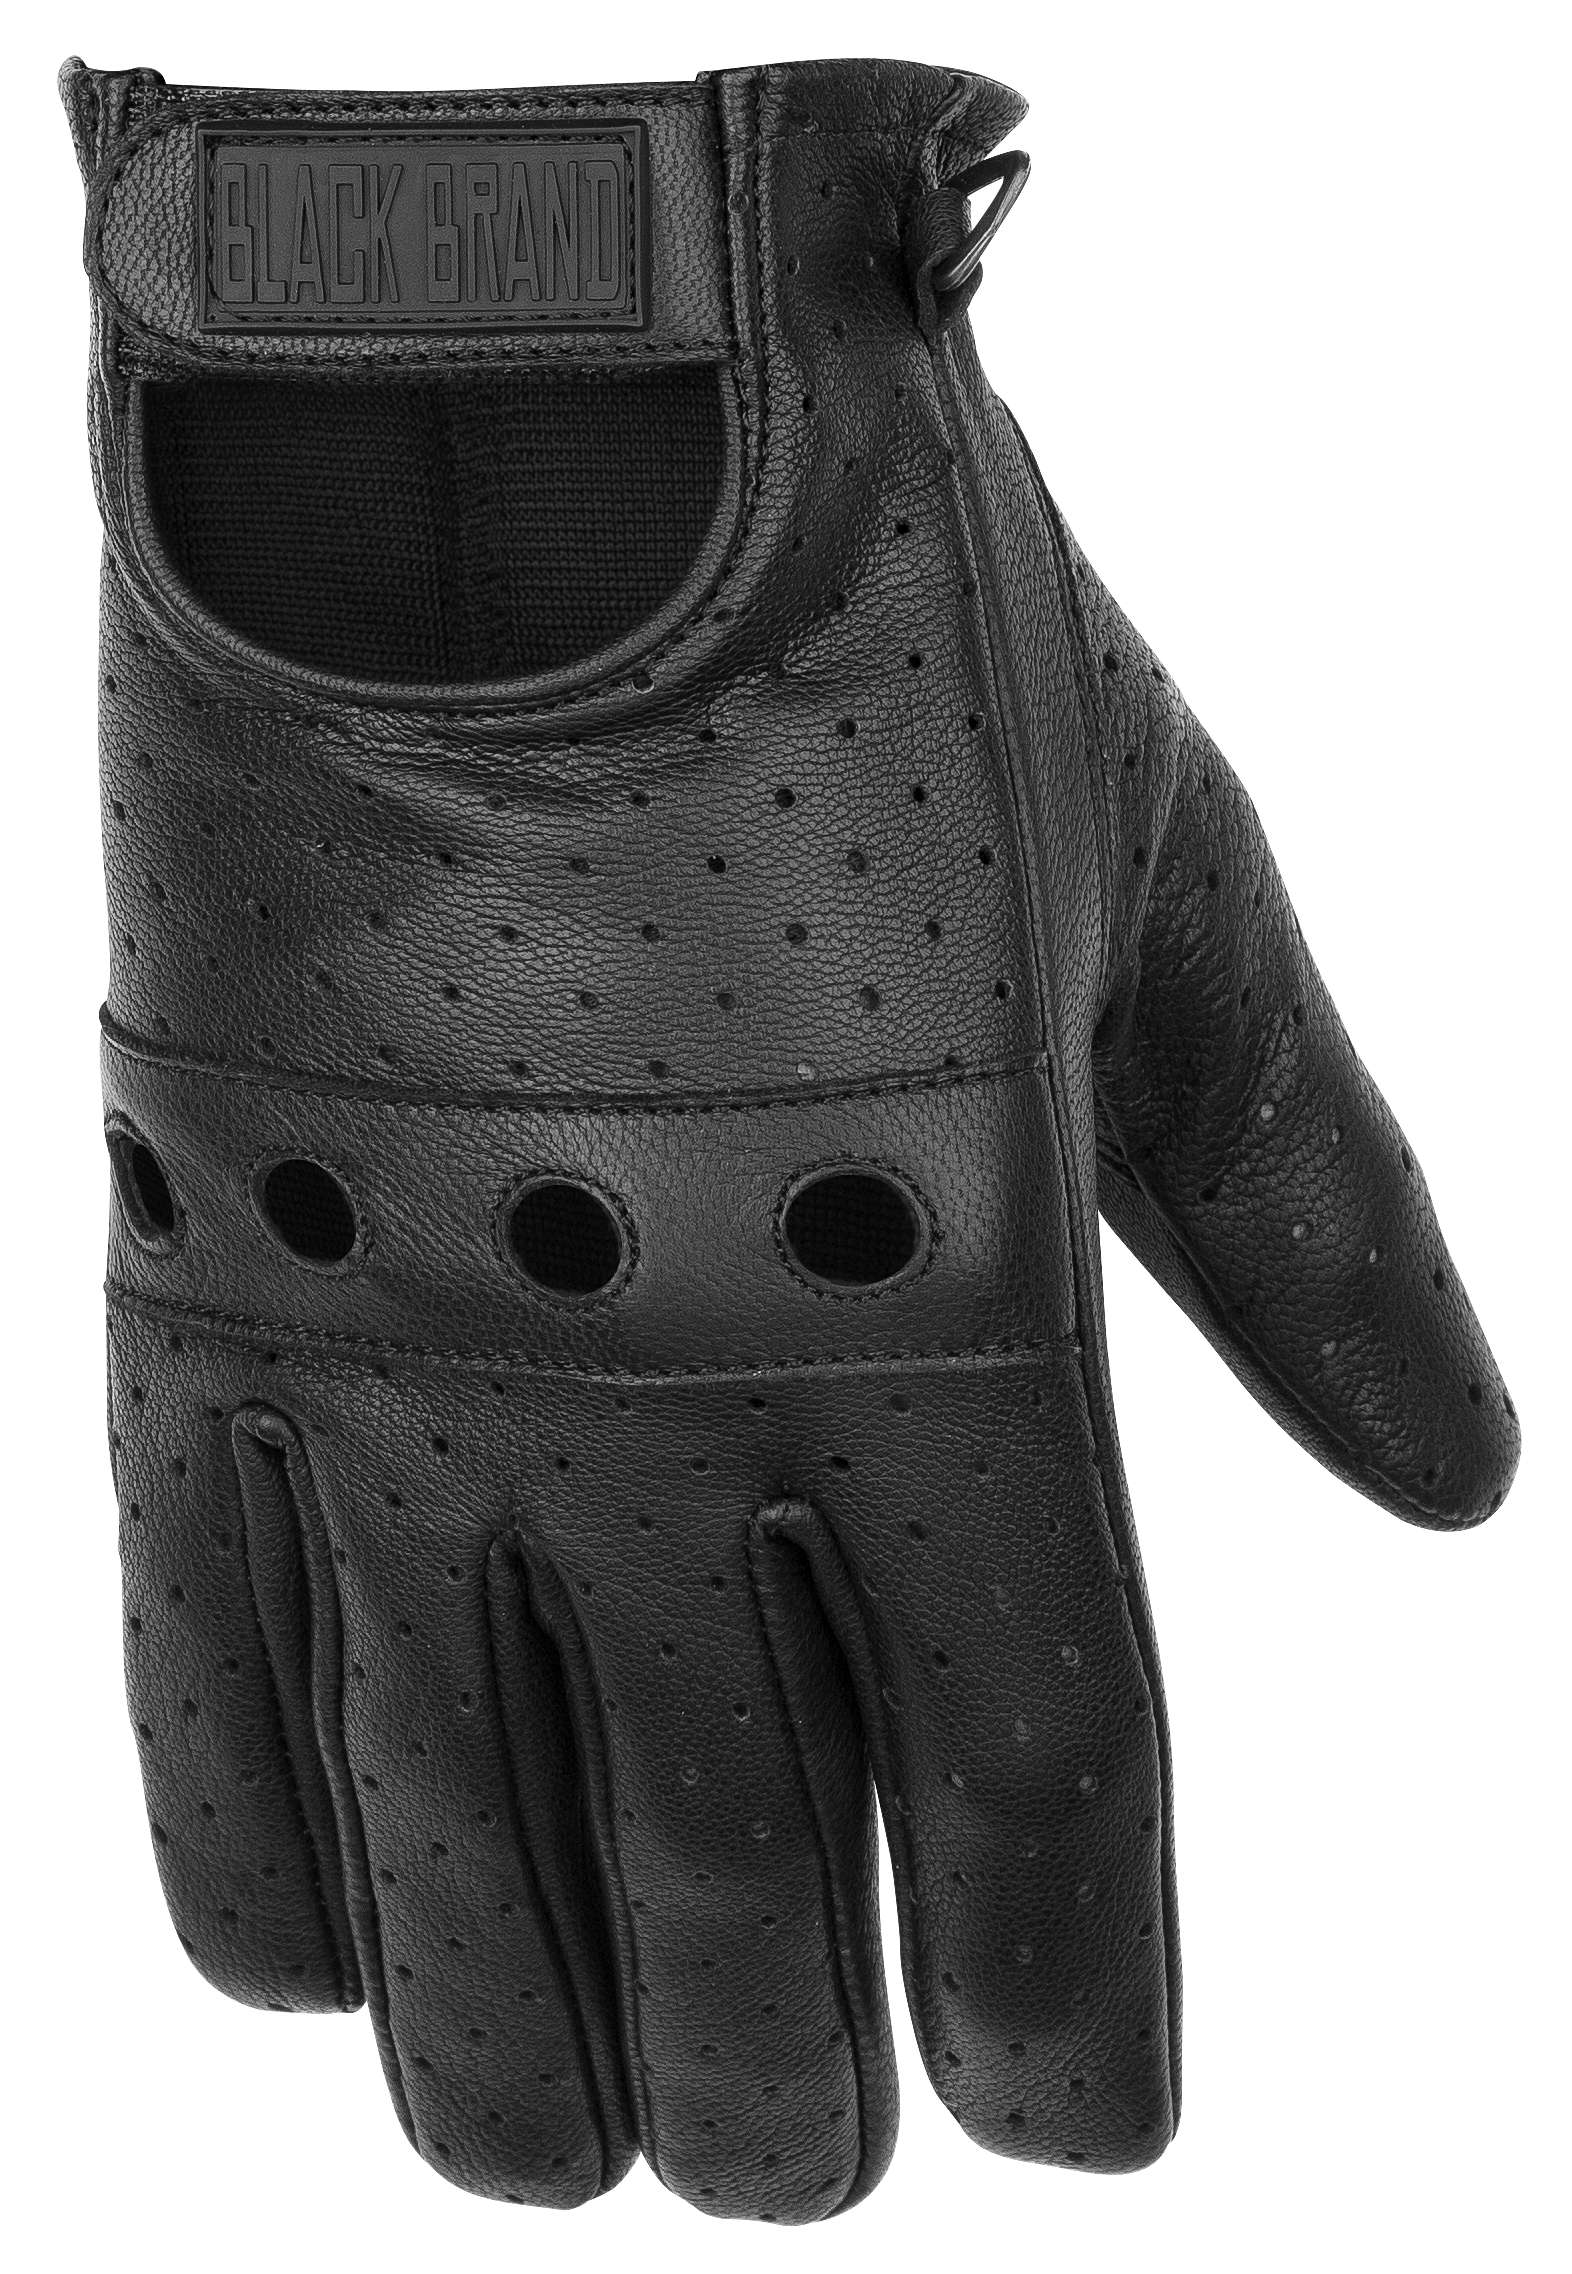 Black Brand Bare Knuckle Gloves